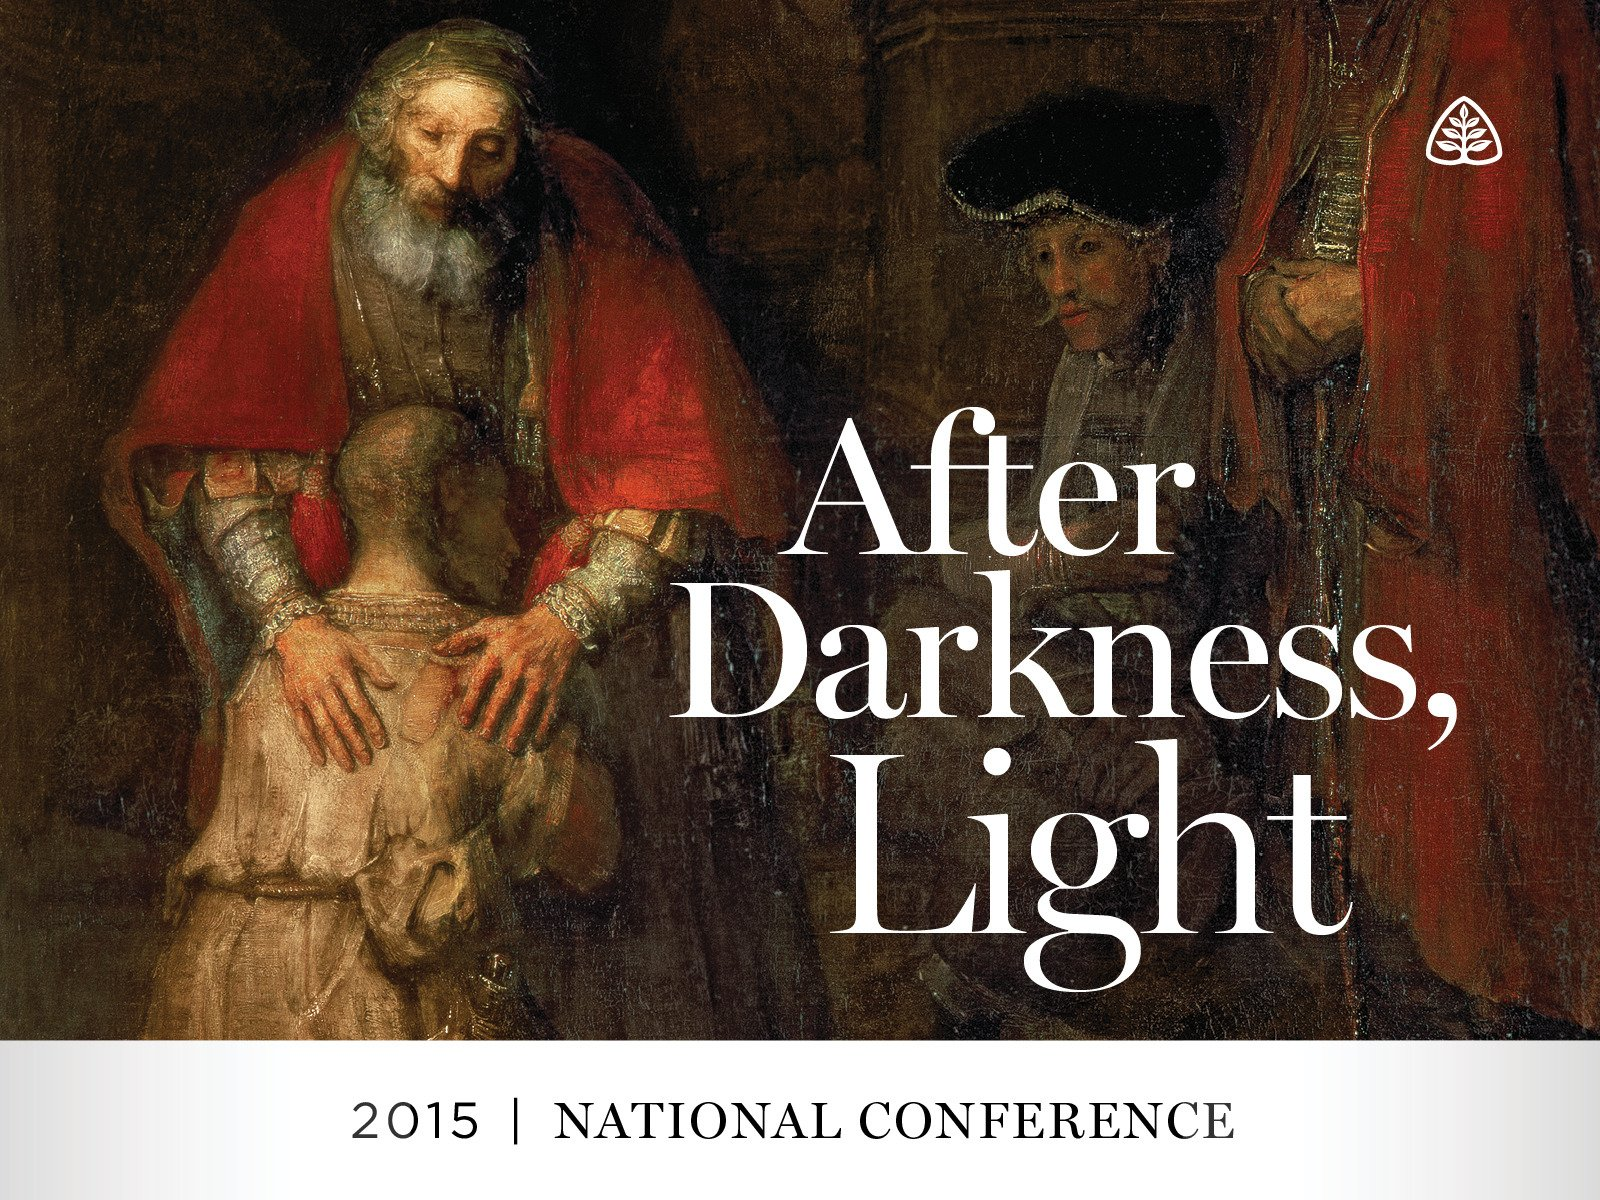 After Darkness, Light: 2015 National Conference